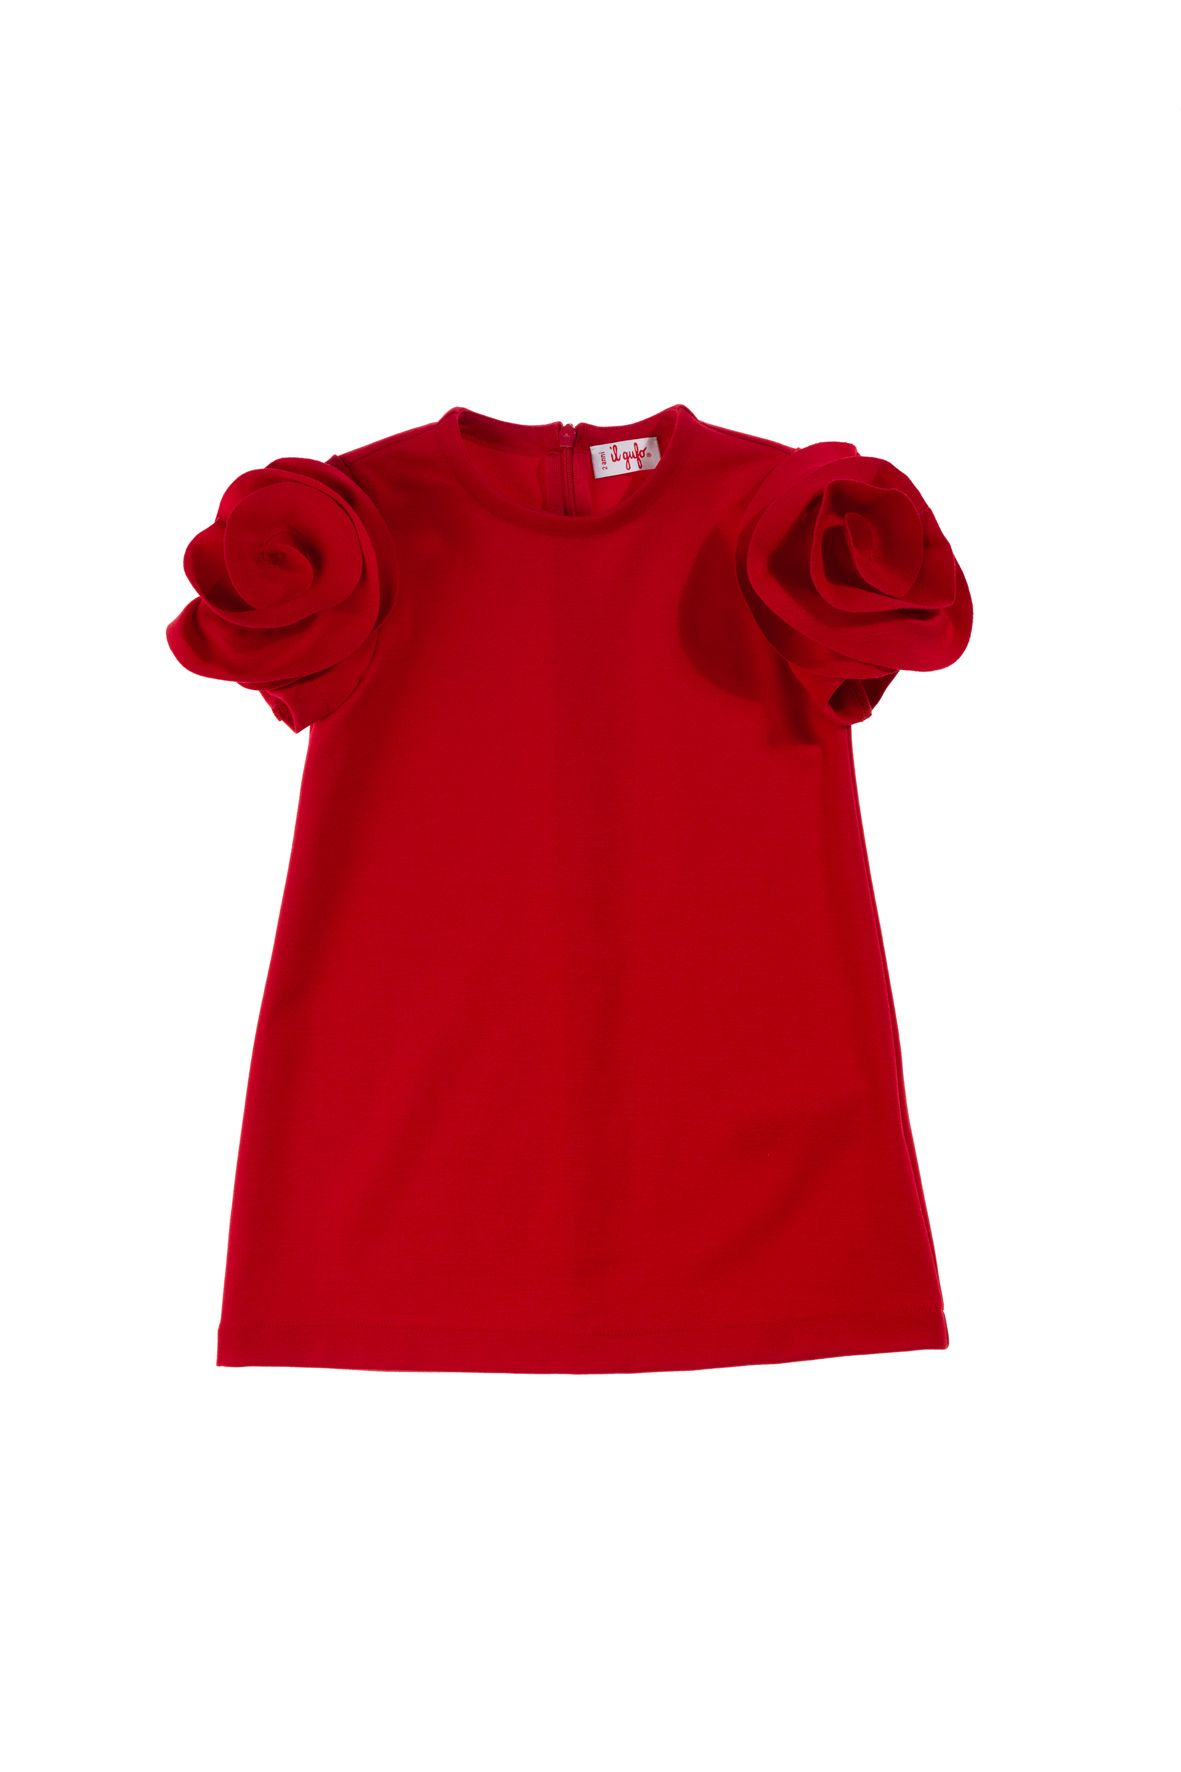 Il Gufo vibrant red girls dress rose sleeves